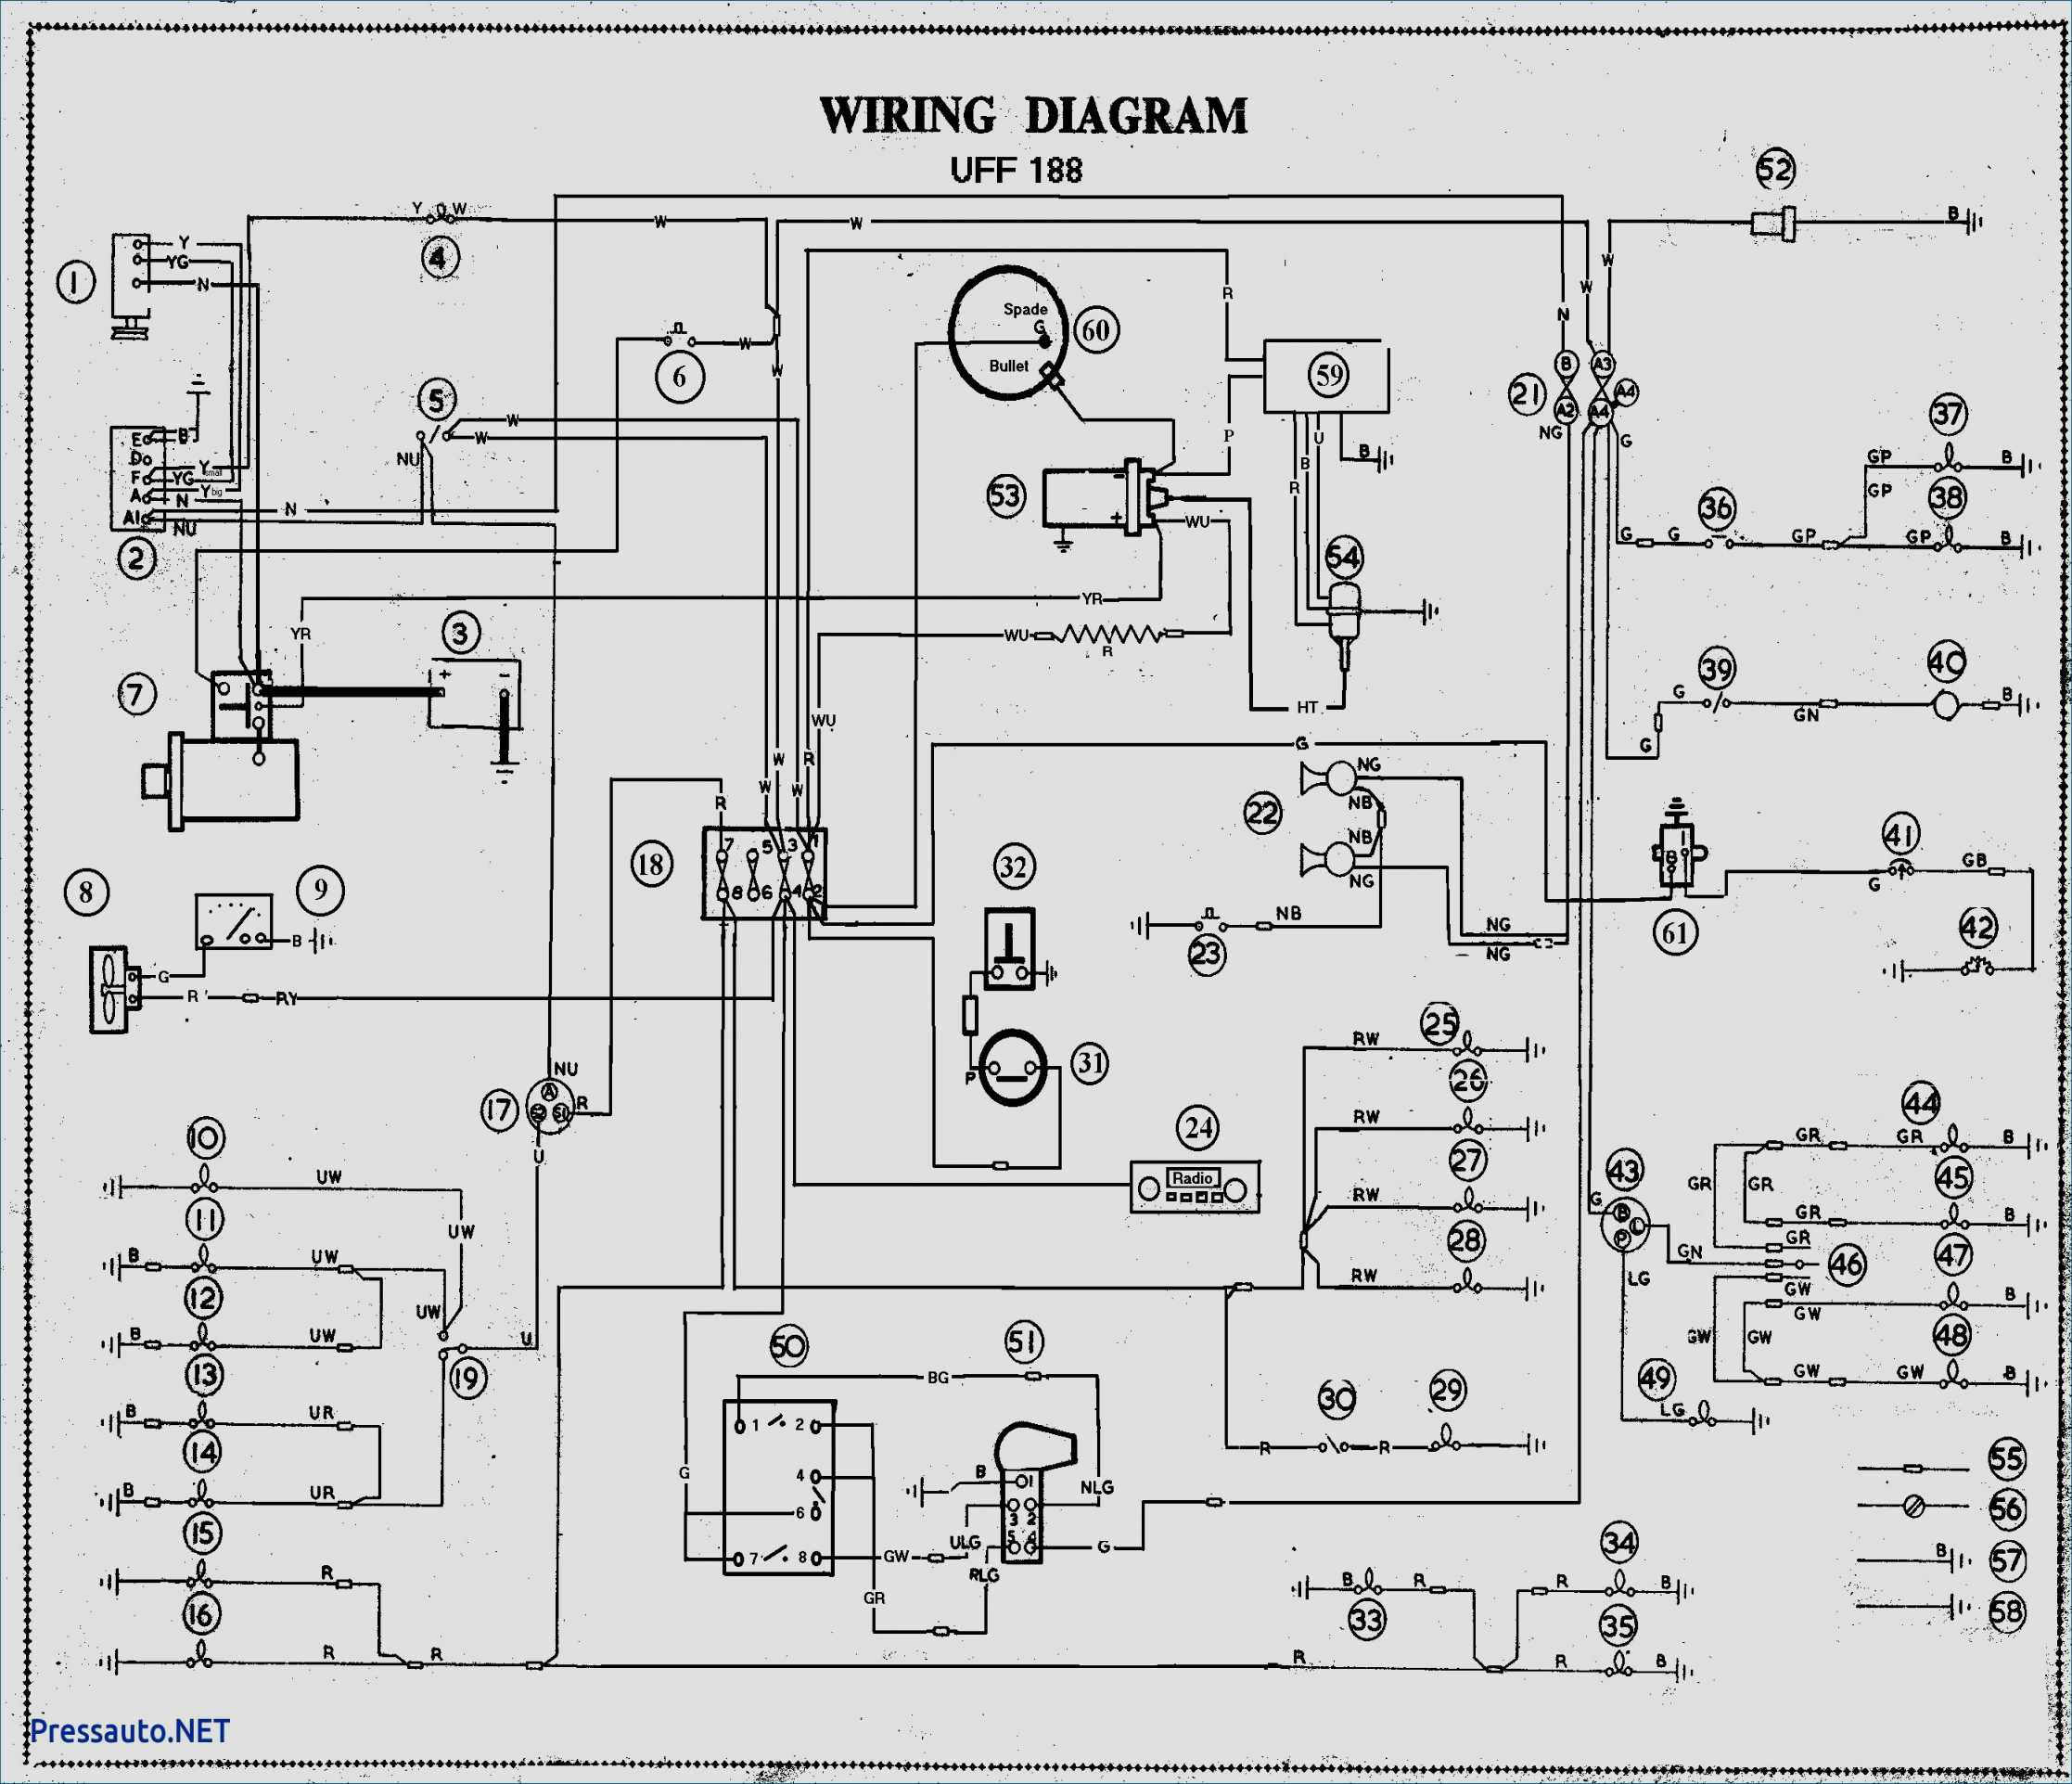 Panther Pa720C Remote Start Wiring Diagrams - Free Wiring Diagram - Bulldog Remote Start Wiring Diagram